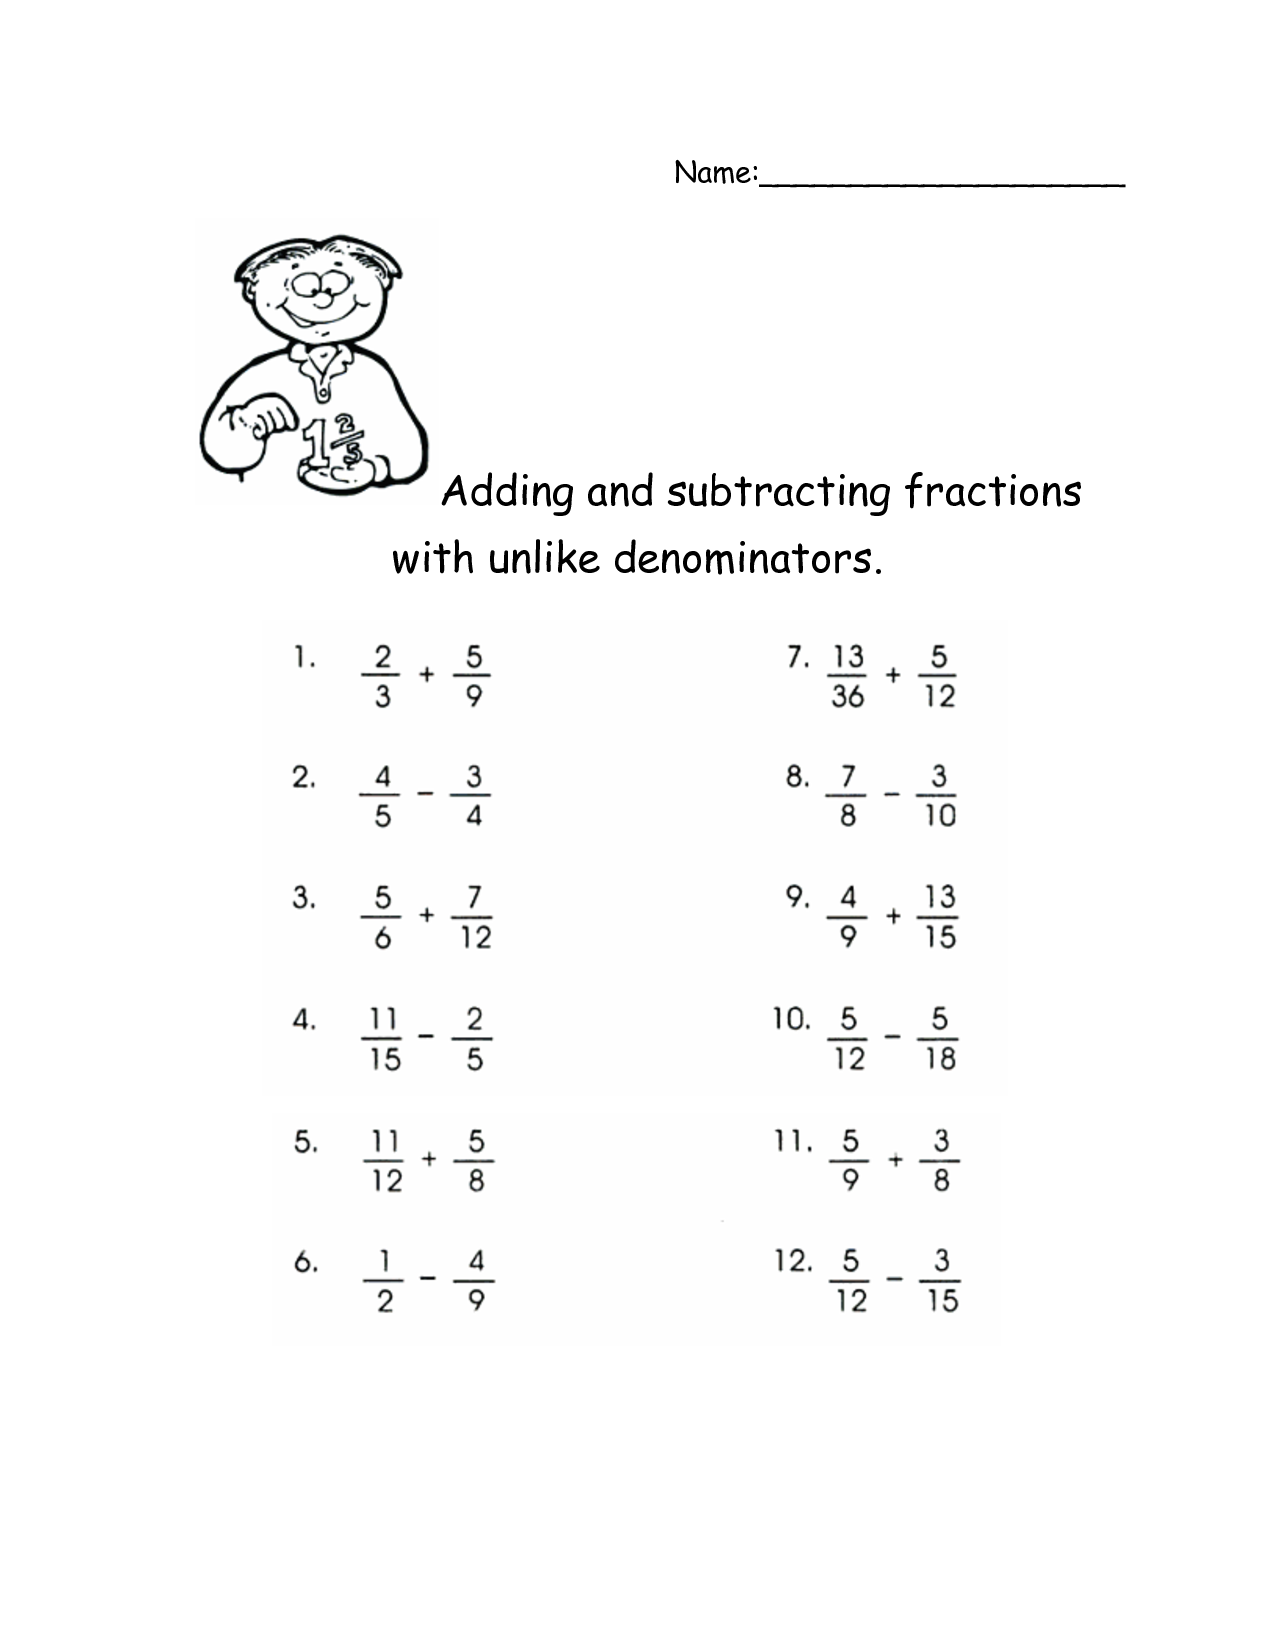 worksheet Adding And Subtracting Fractions And Mixed Numbers Worksheet adding and subtracting fractions with unlike denominators activities